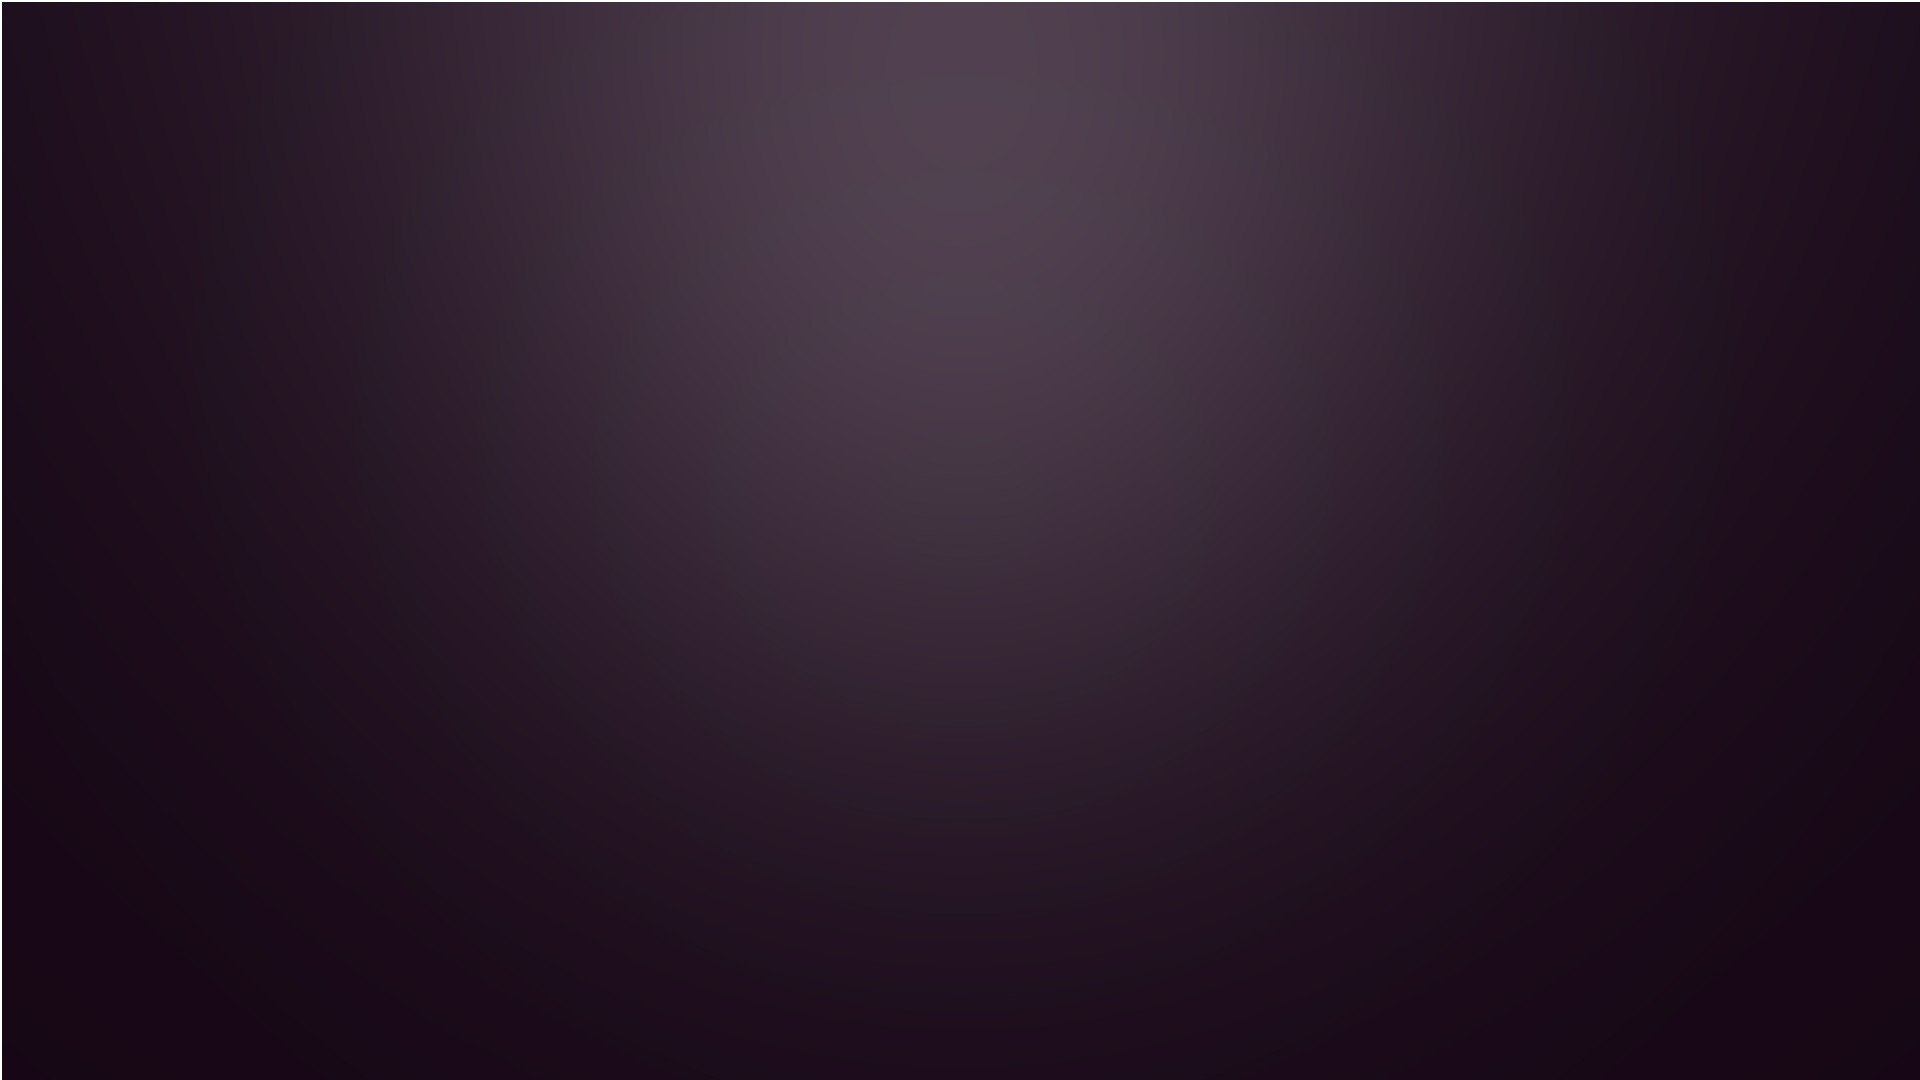 Wallpapers For > Plain Dark Purple Wallpaper